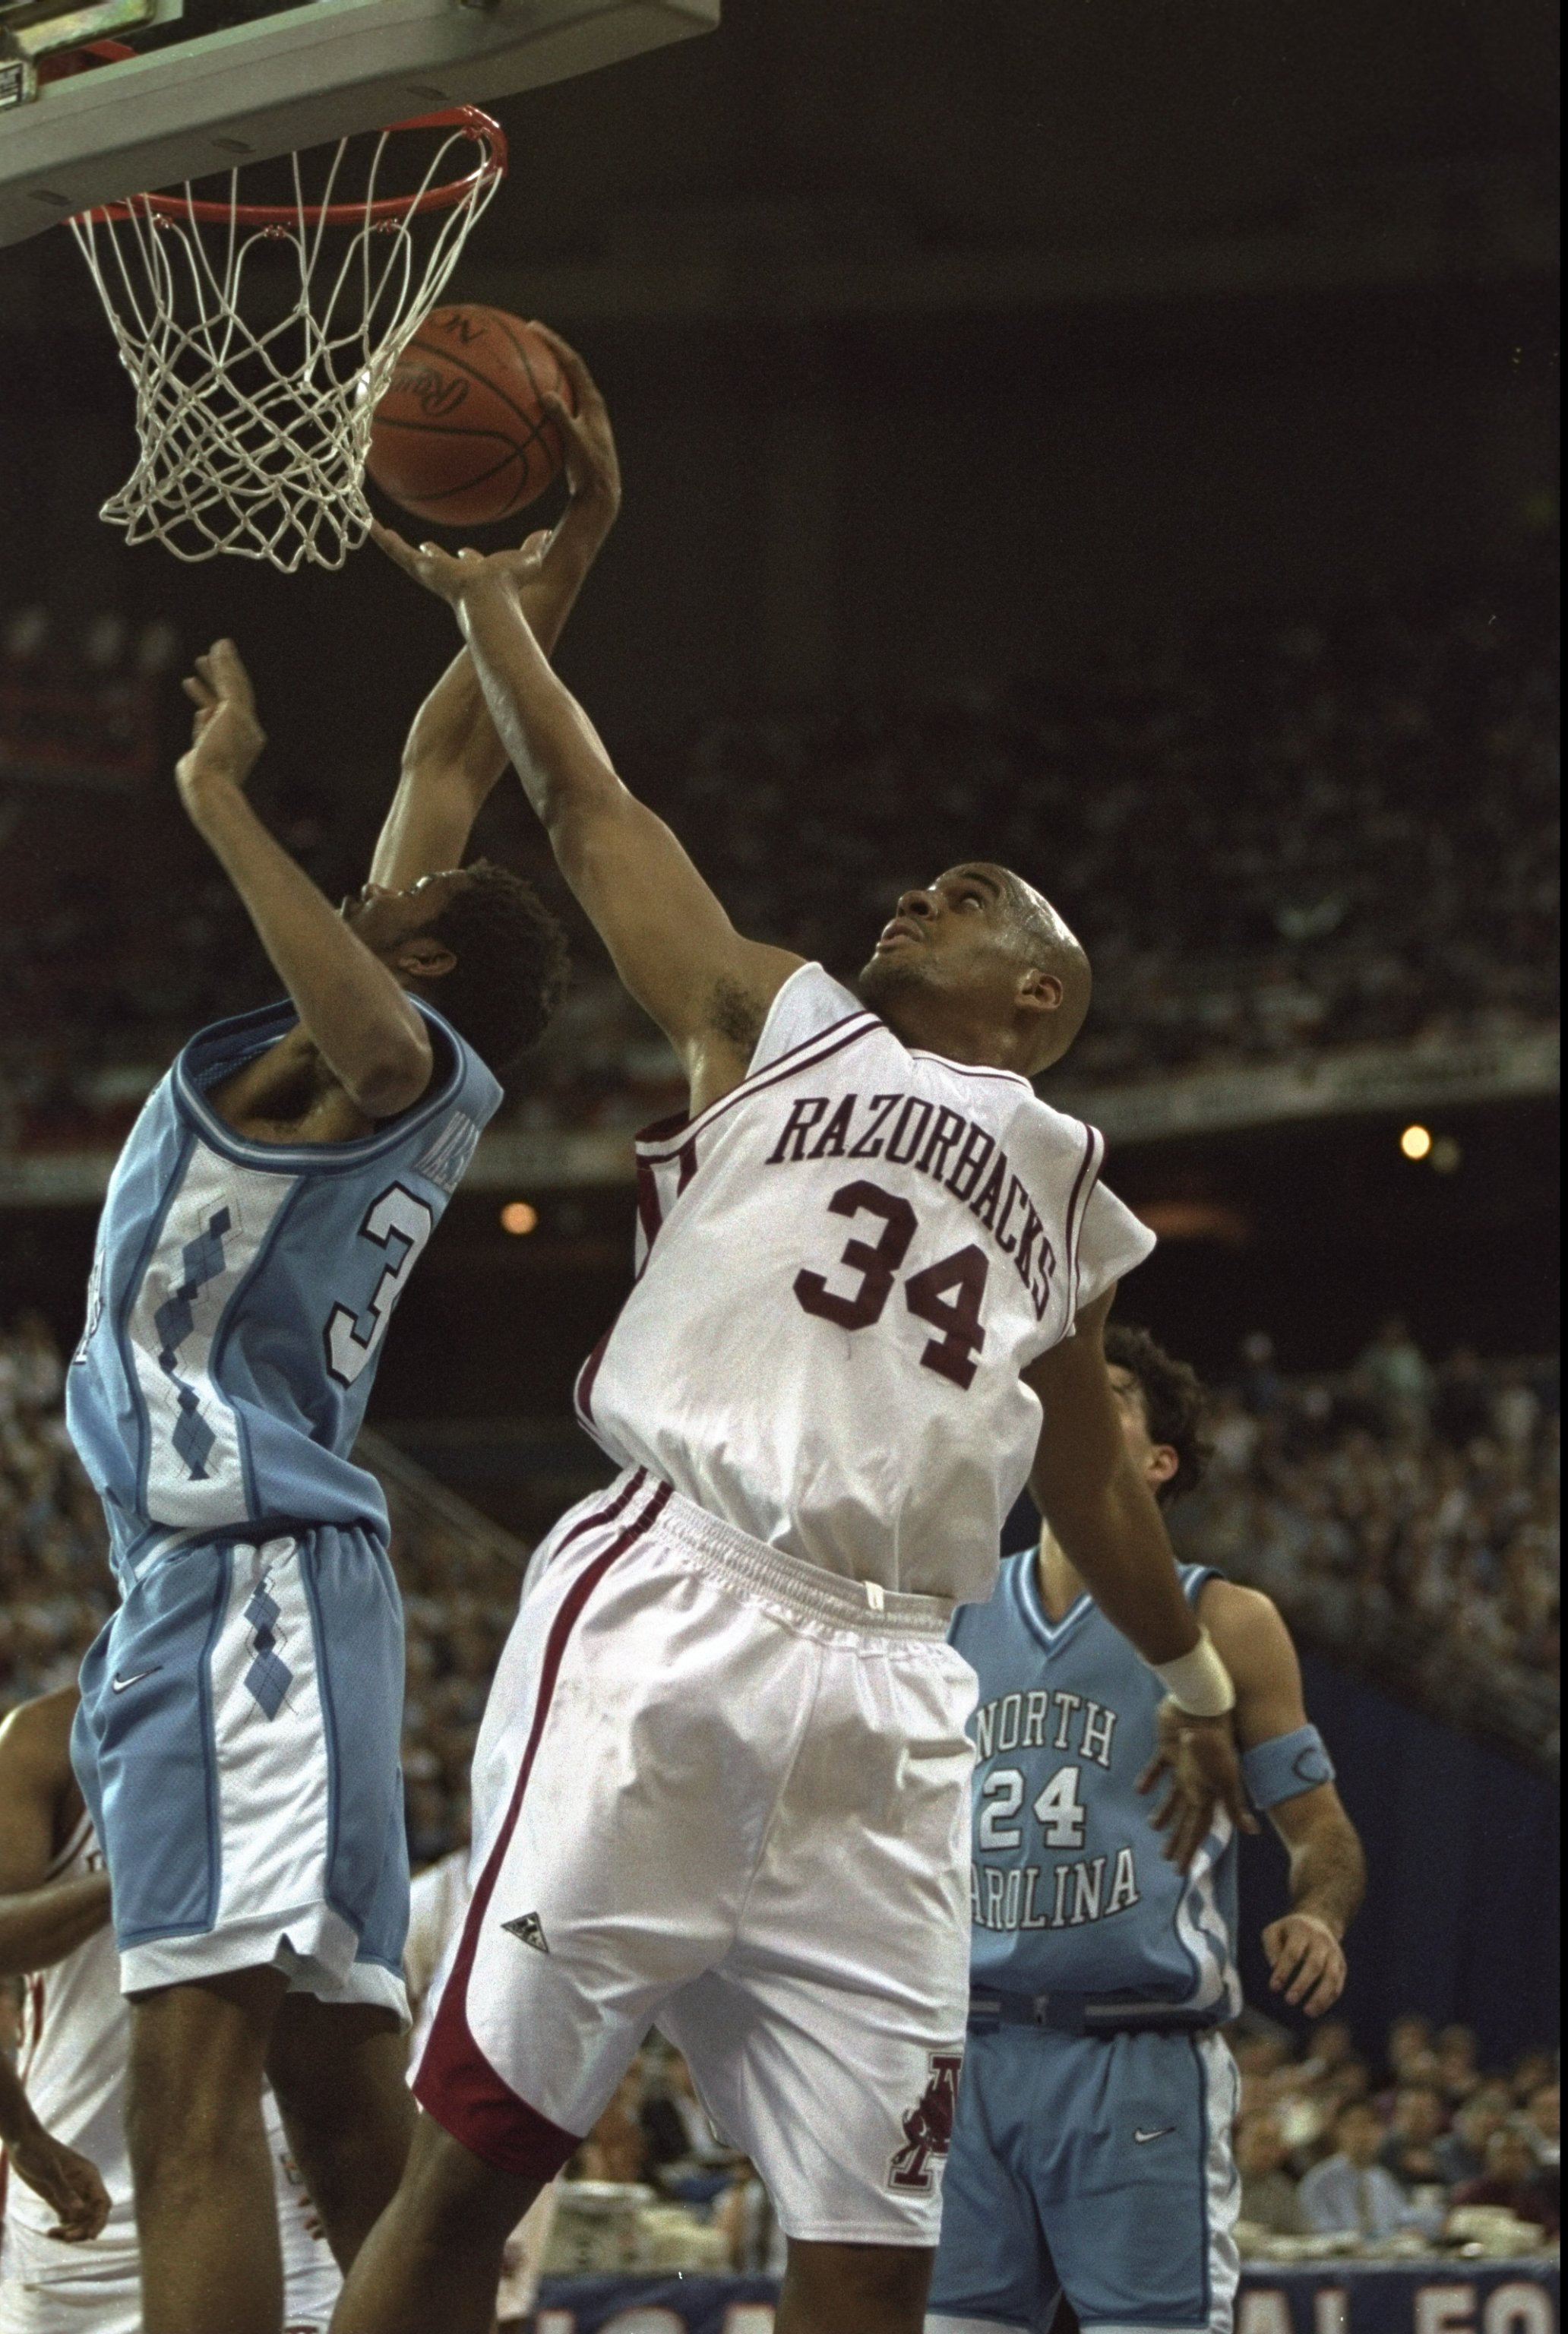 Arkansas was knocked out of the tournament in the Sweet 16 by North Carolina in 1993. The Tar Heels went on to win the national championship.